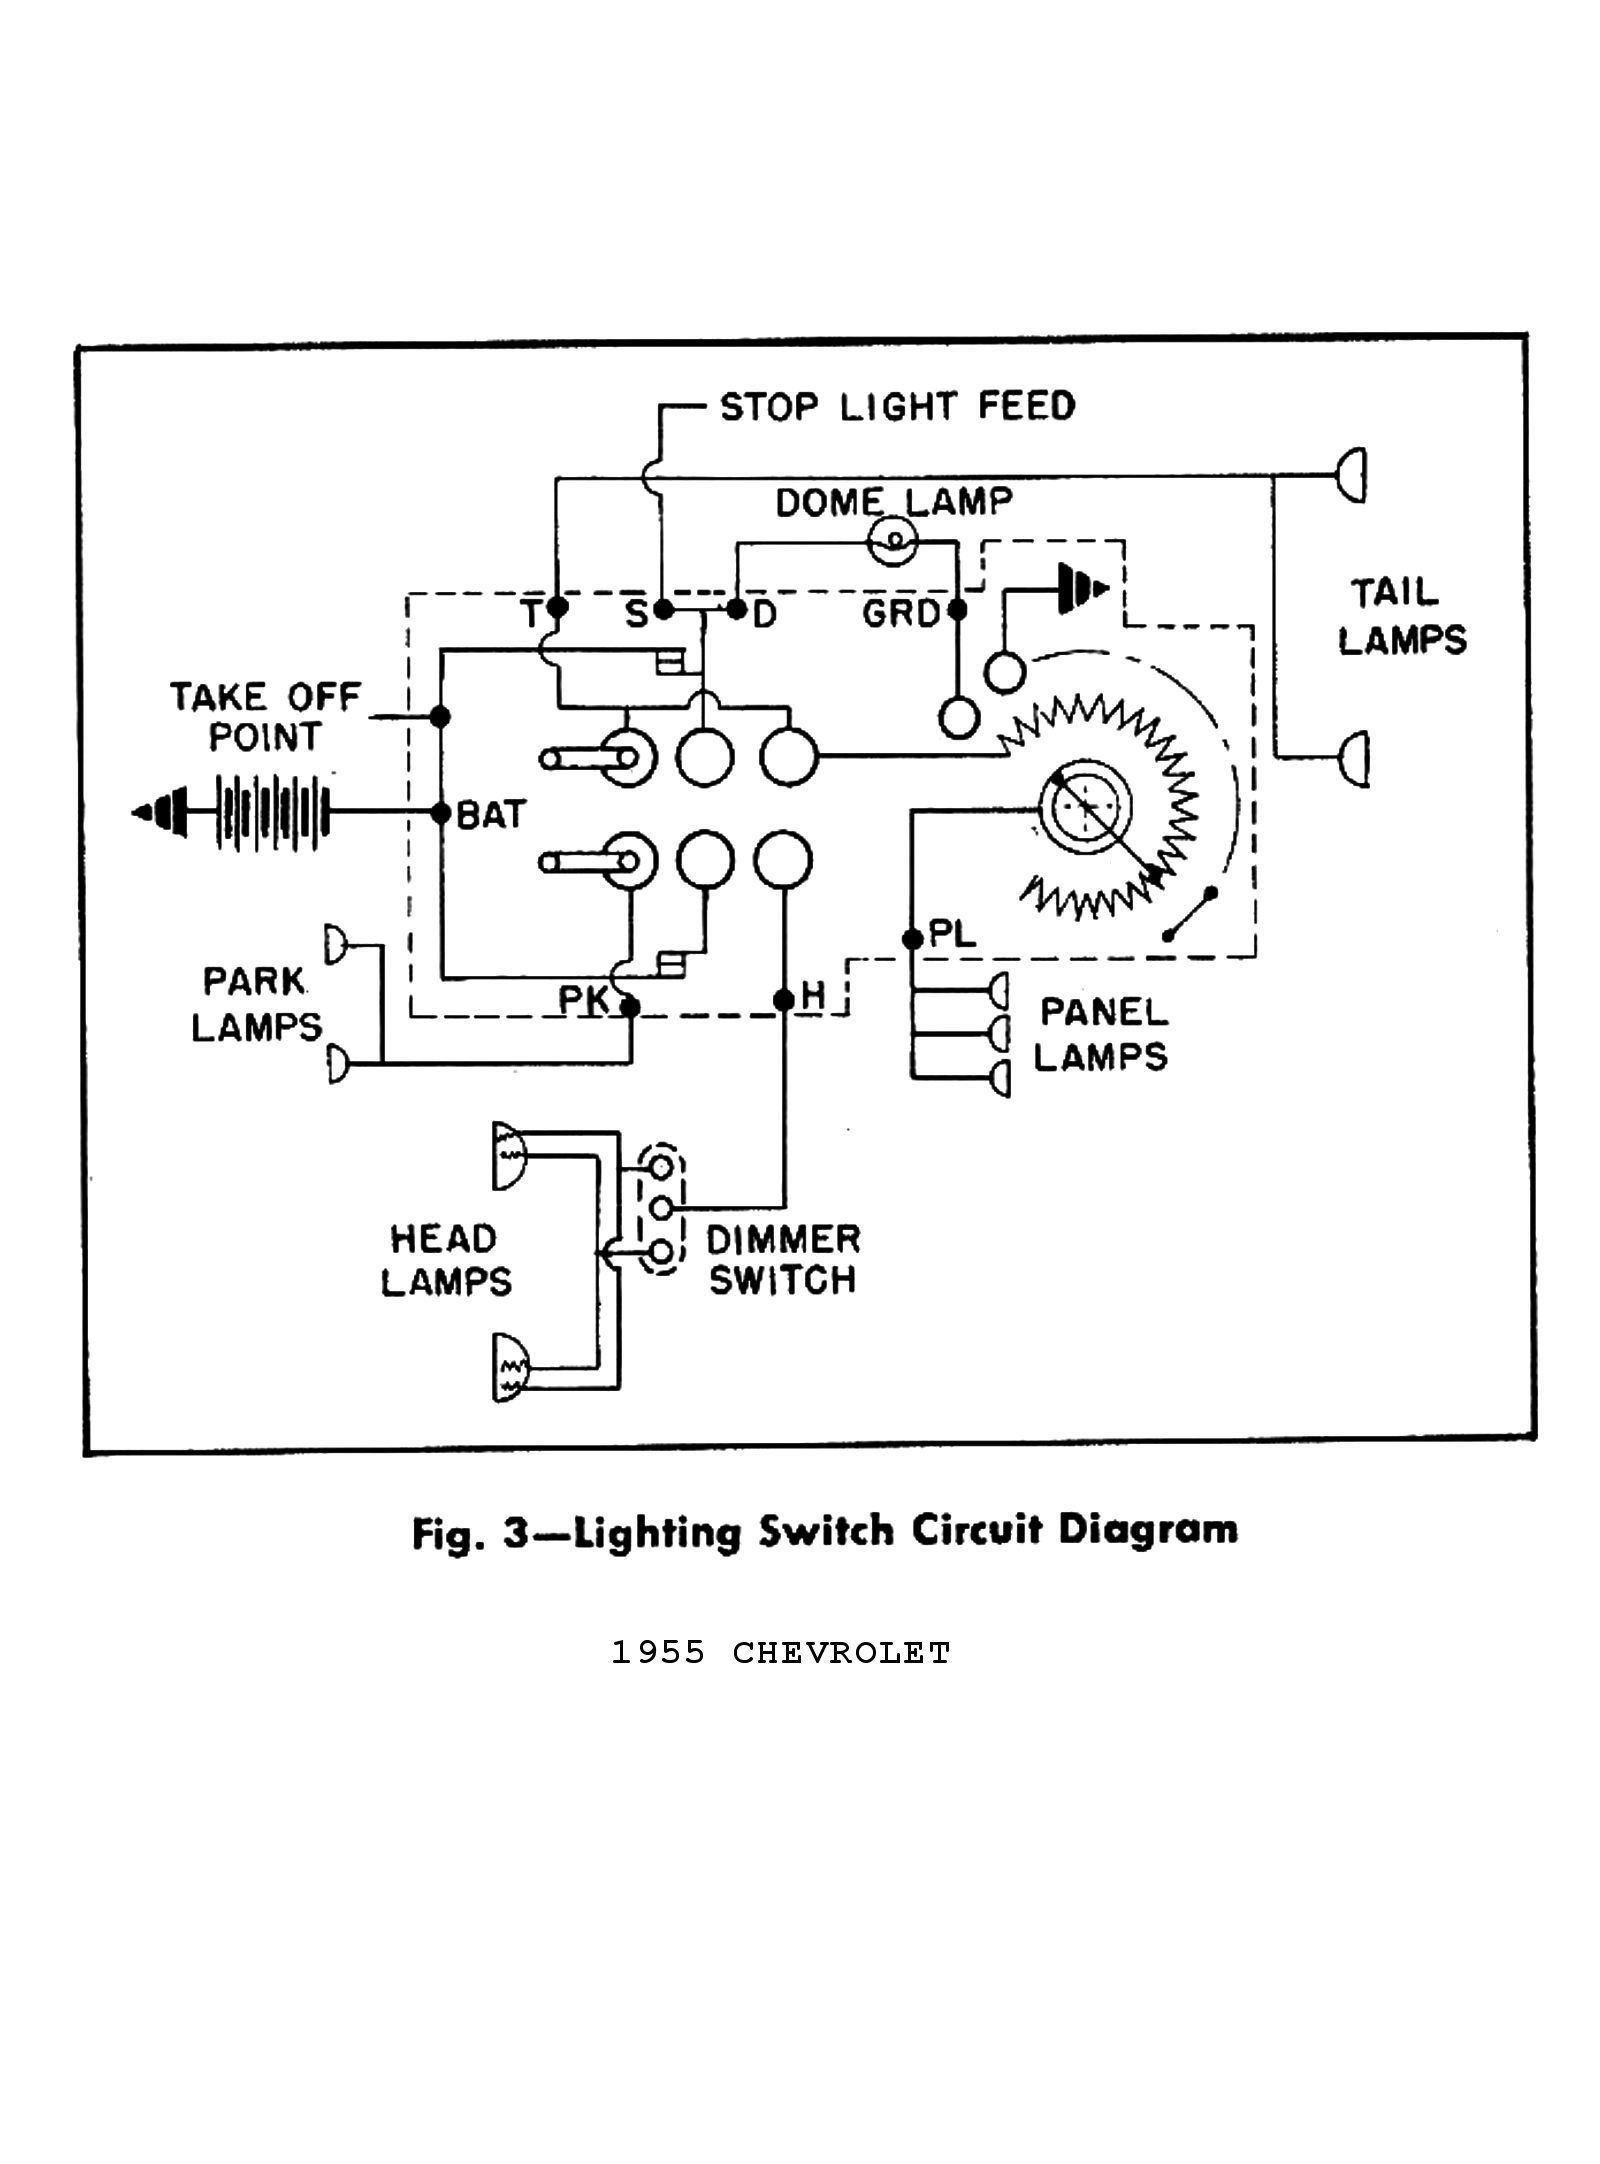 [SCHEMATICS_4NL]  Universal Ignition Switch Wiring Diagram Inspirational 1955 Chevy Of for  1955 Chevy Ignition Switch Wiring… | Light switch wiring, Diagram,  Electrical switch wiring | Ignition Switch Schematic |  | Pinterest